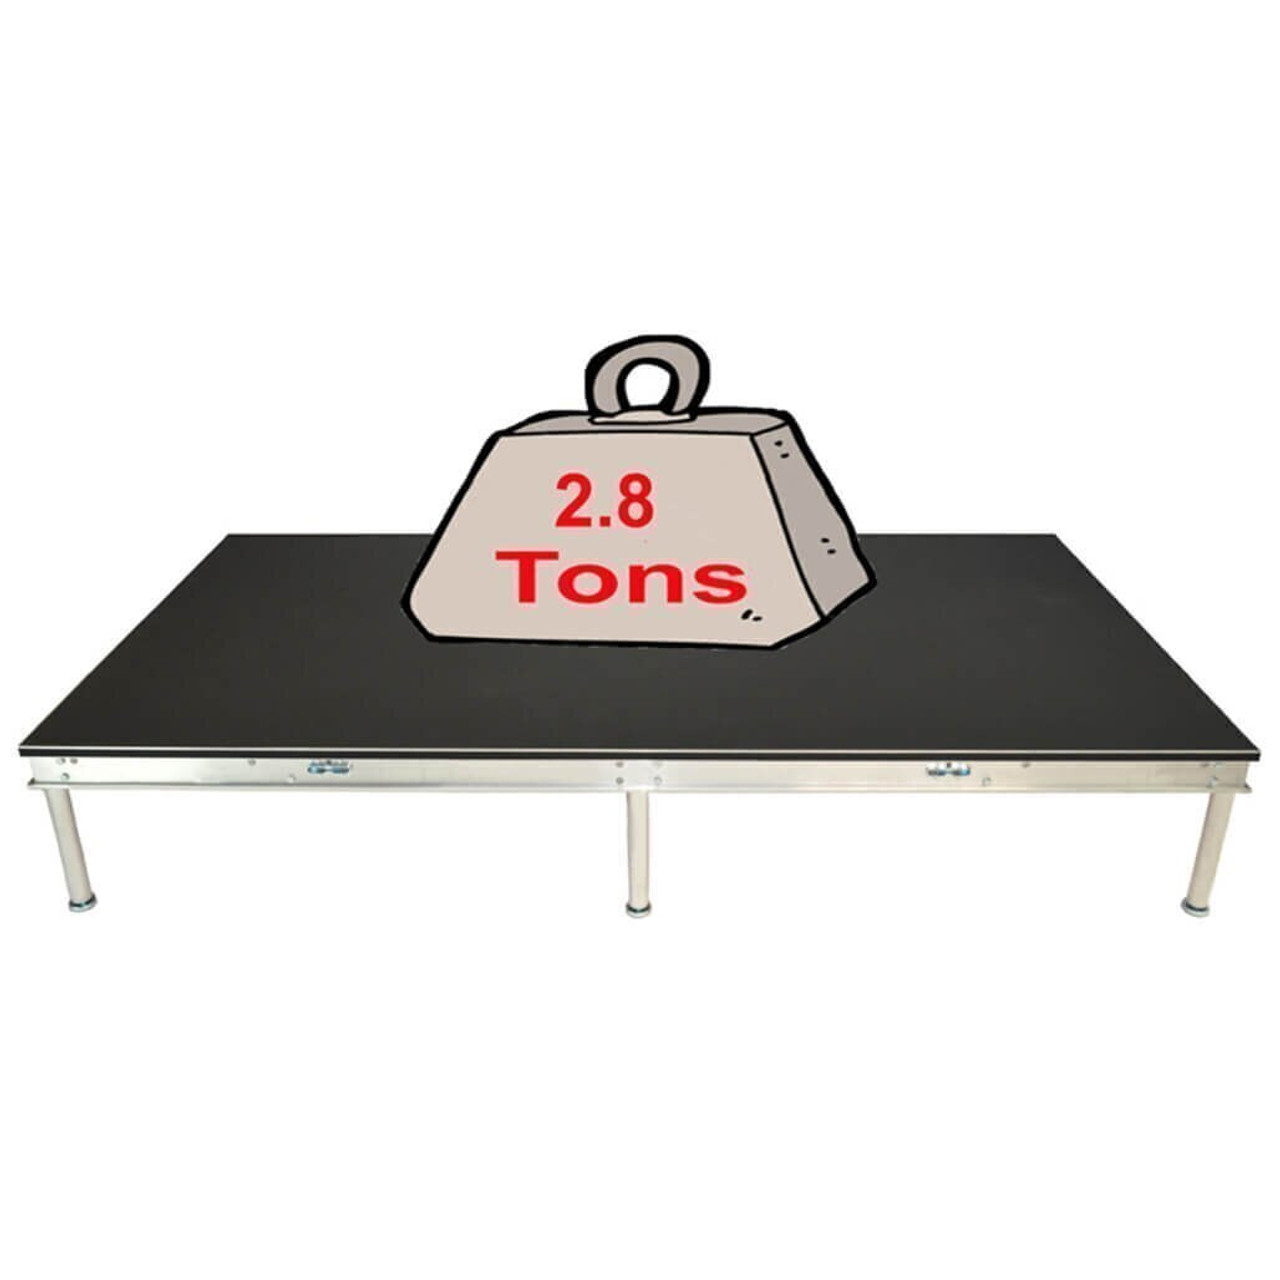 Top rated Quik Stage 4' x 40' High Portable Stage Package with Black Polyvinyl Non-Skid Surface. Additional Heights and Surfaces Available - Holds 2.8 tons per 4 x 8 or 1.4 tons per 4 x 4 when spread out evenly